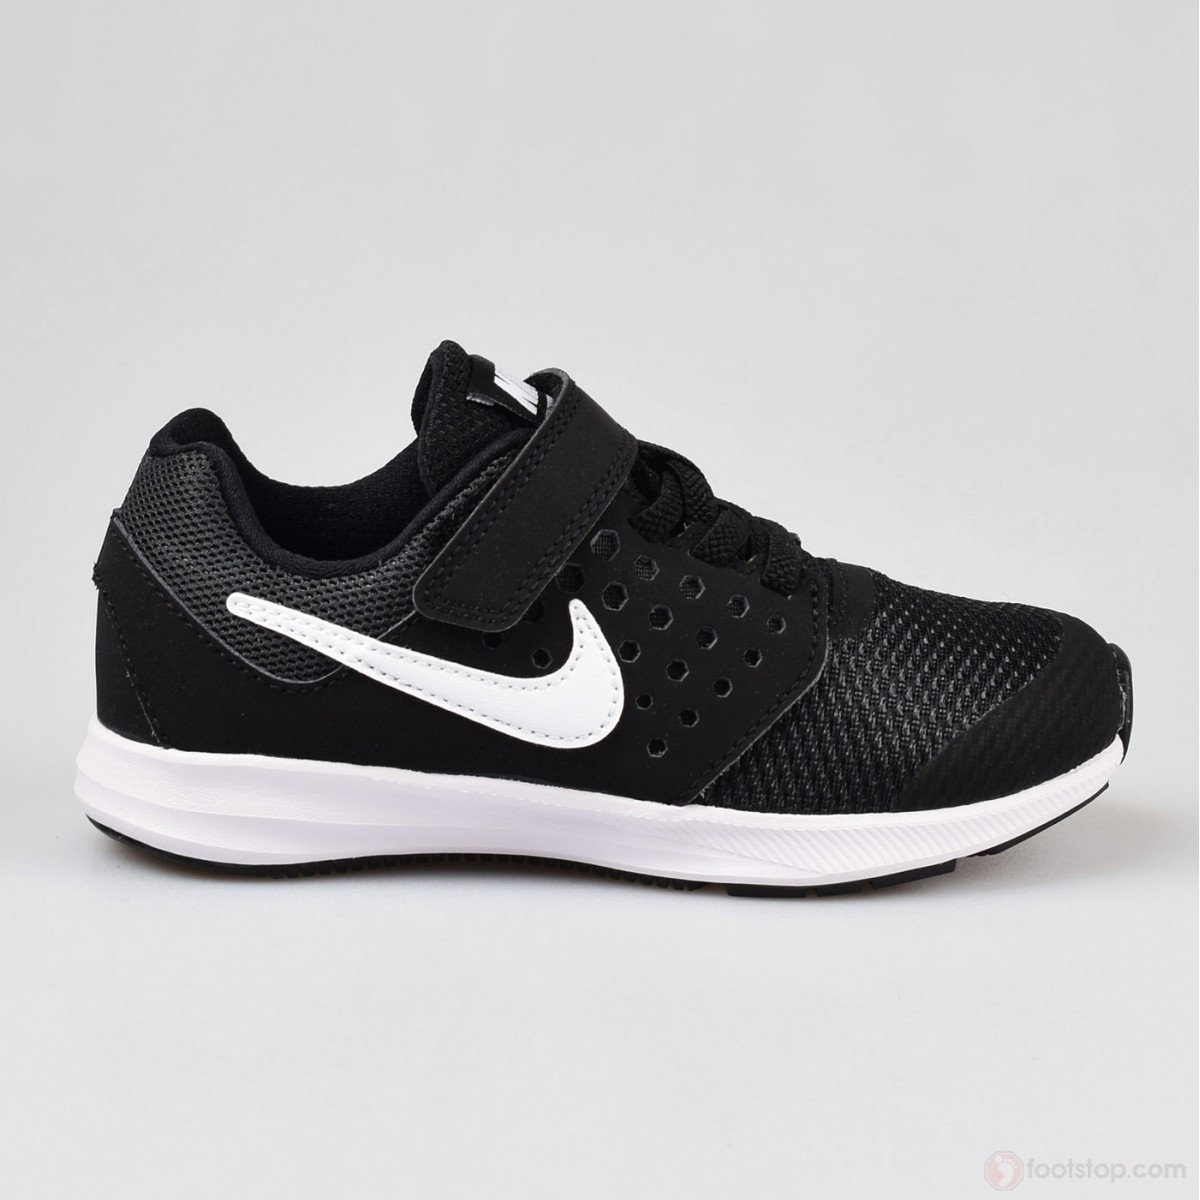 Nike Downshifter Kid Running Shoes